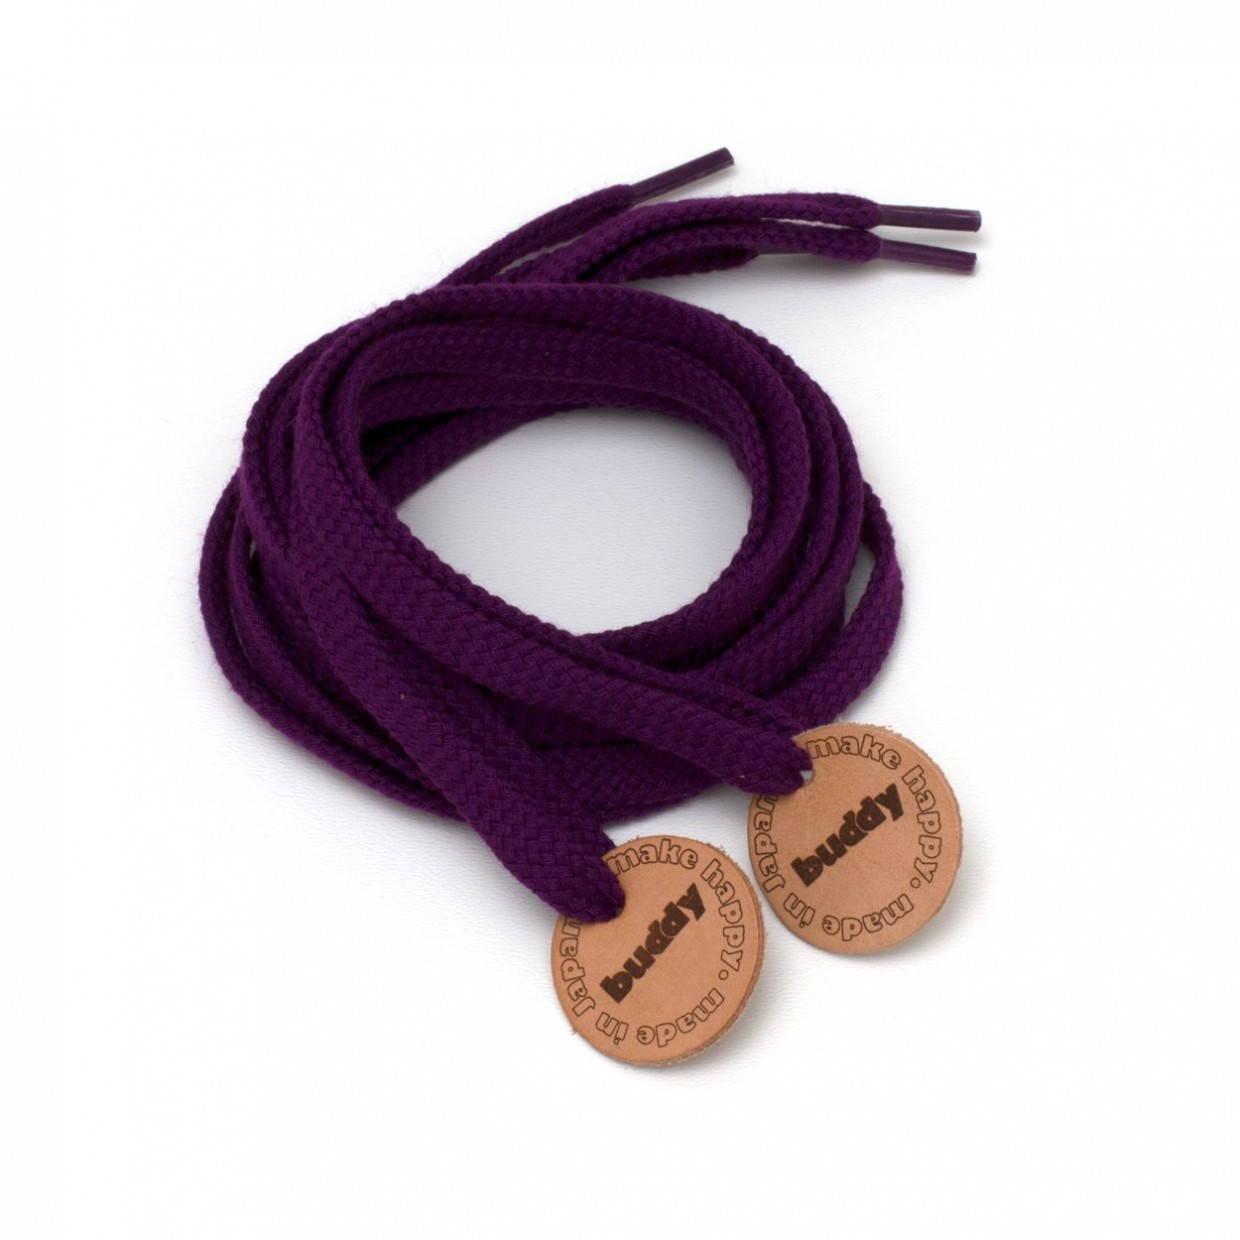 Shoelaces Purple with Leather patch 130 cm : 51""